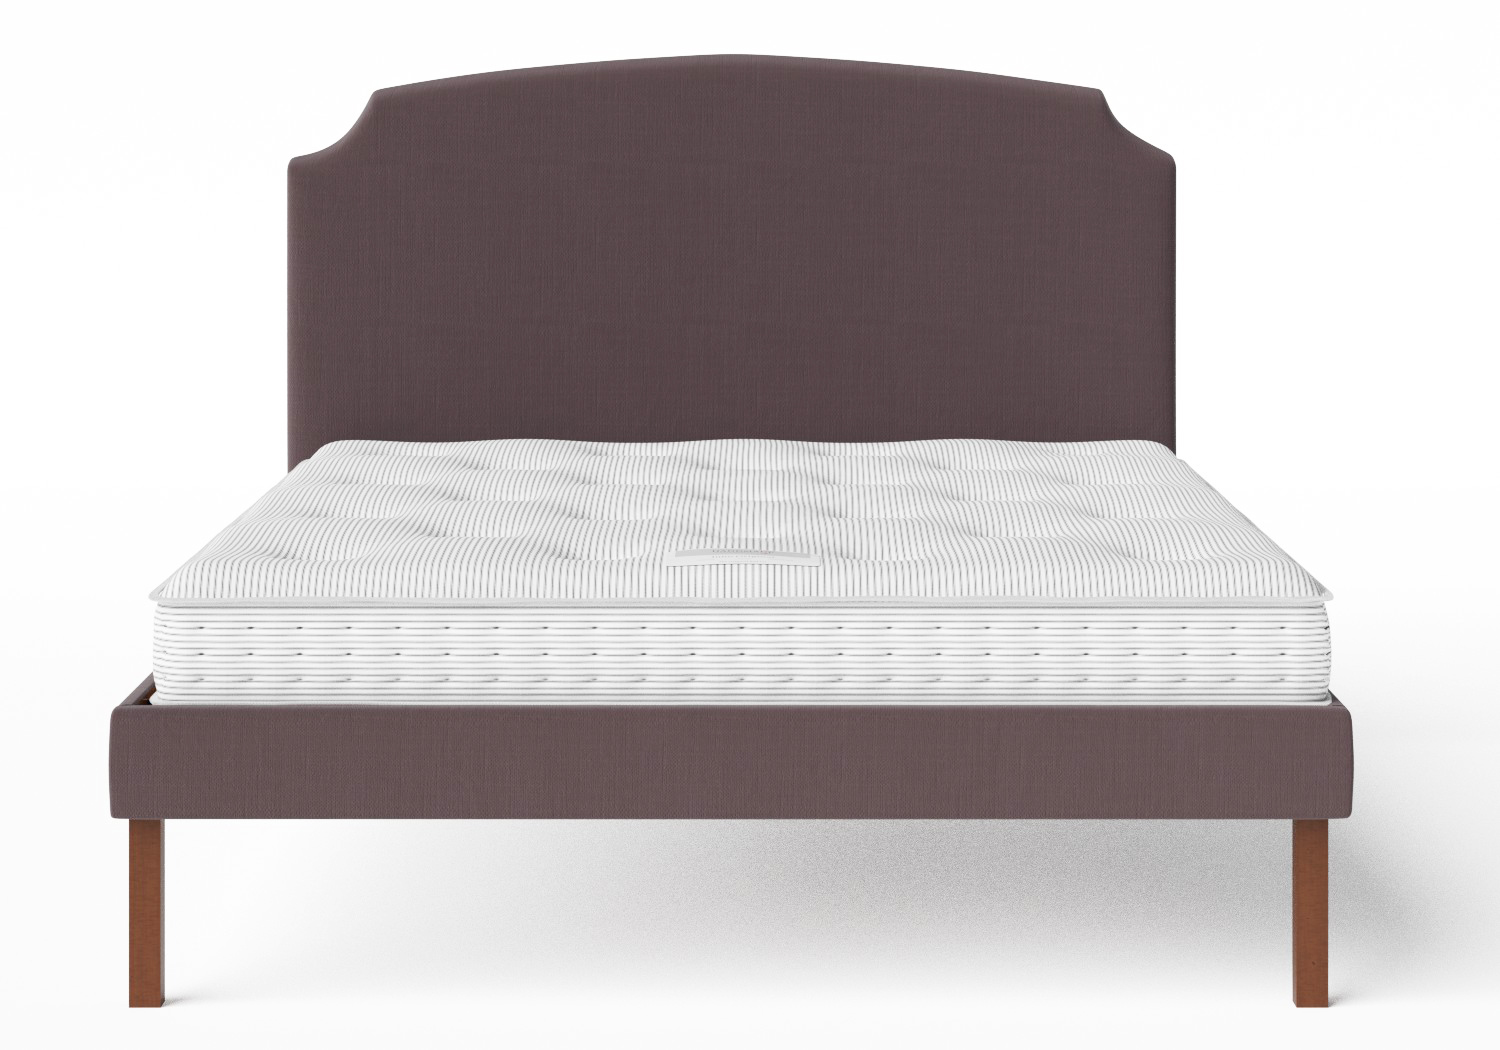 Kobe Upholstered Bed in Aubergine fabric shown with Juno 1 mattress